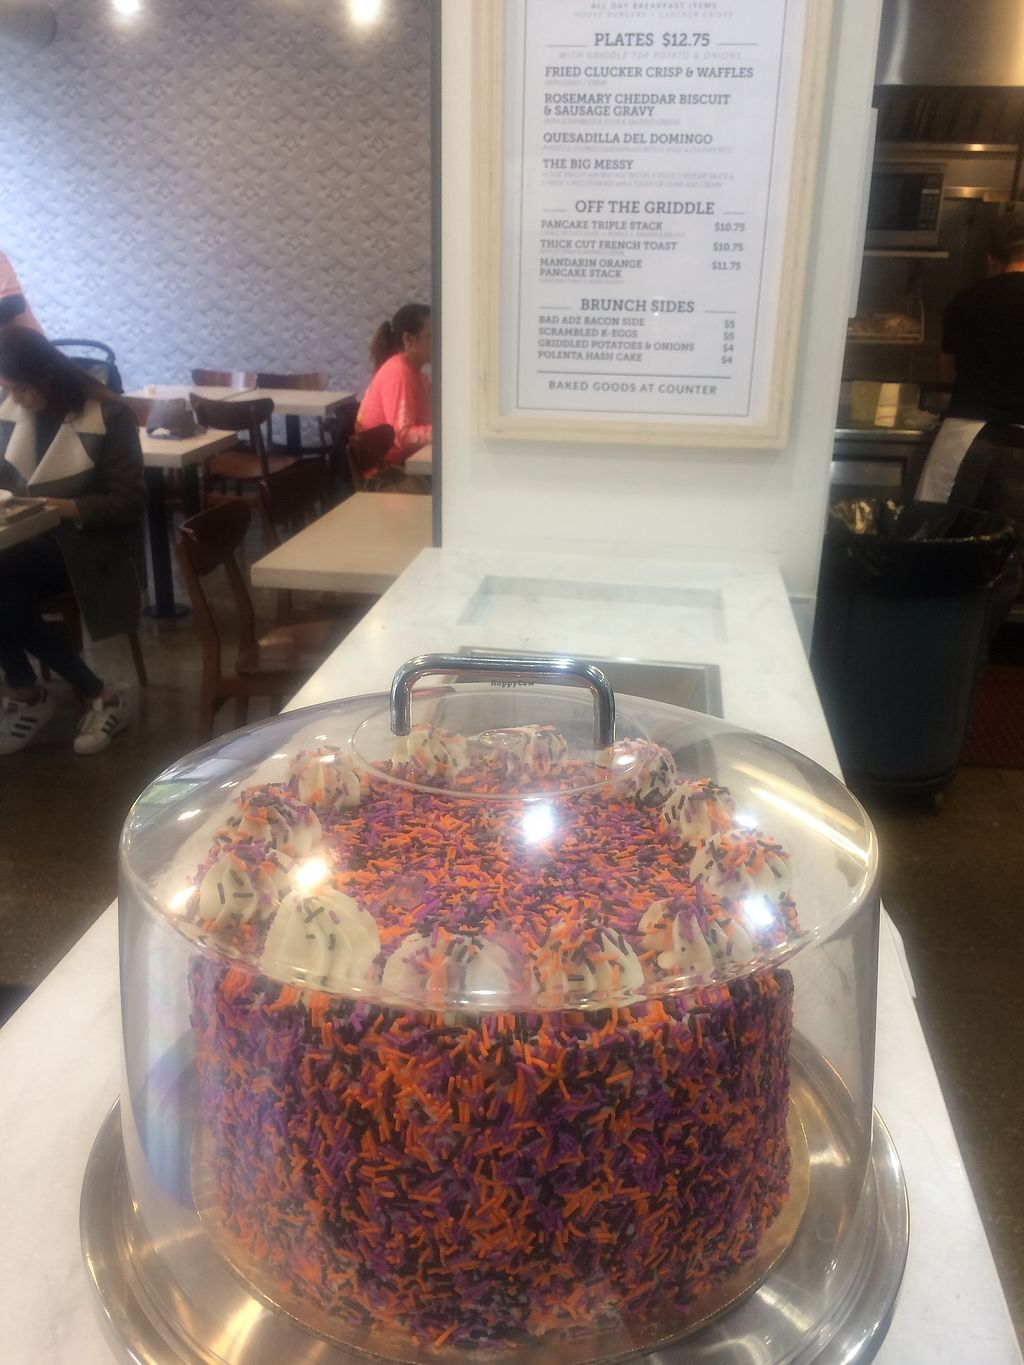 """Photo of Kal'ish  by <a href=""""/members/profile/Veganmeandlenab"""">Veganmeandlenab</a> <br/>A shot of the funfetti cake from Pie Pie My Darling. Super yummy! <br/> November 1, 2017  - <a href='/contact/abuse/image/83019/320822'>Report</a>"""